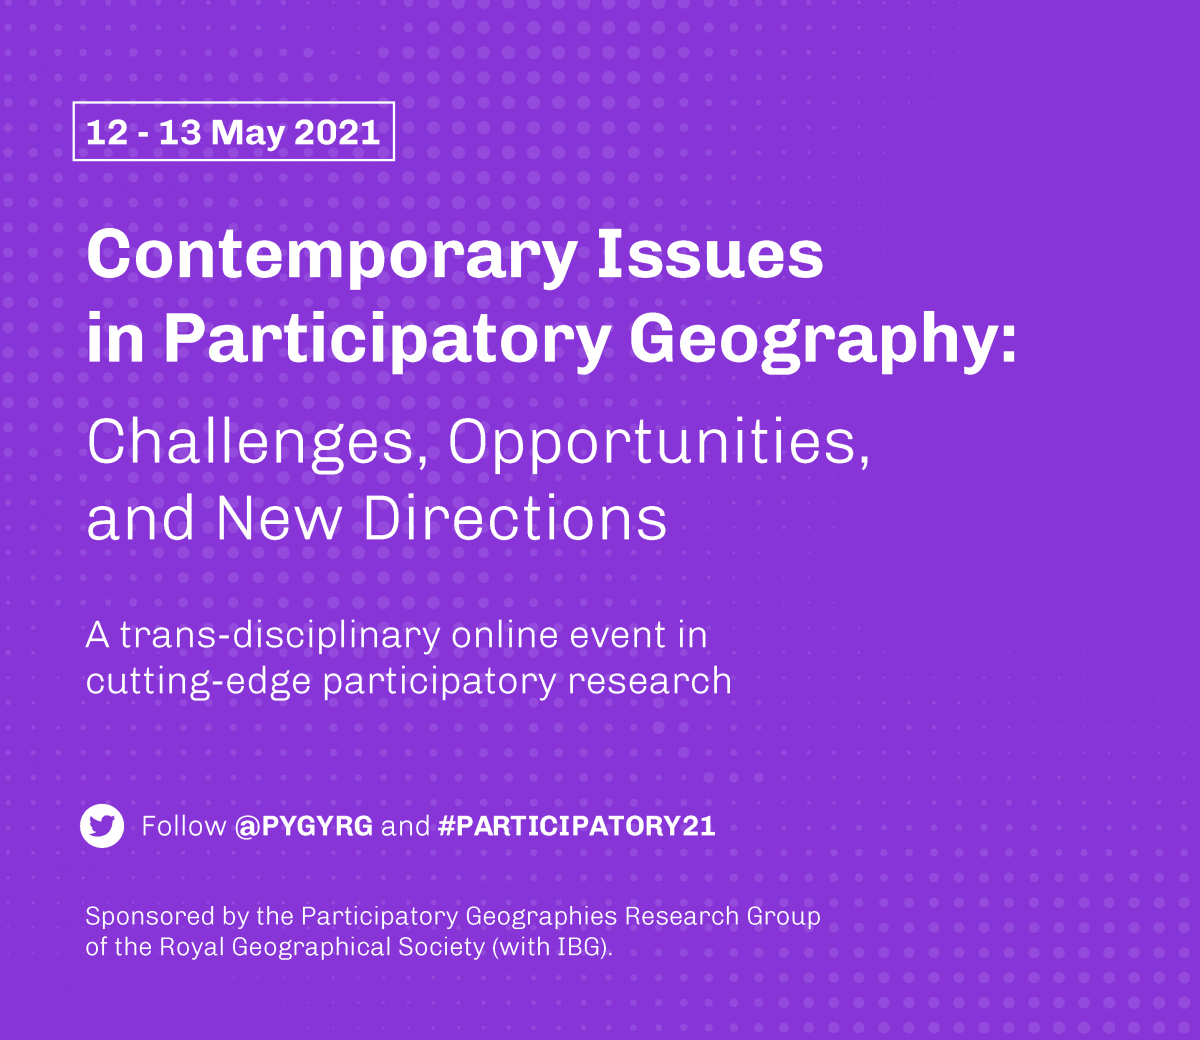 Contemporary Issues in Participatory Geography: Registration and Session Details